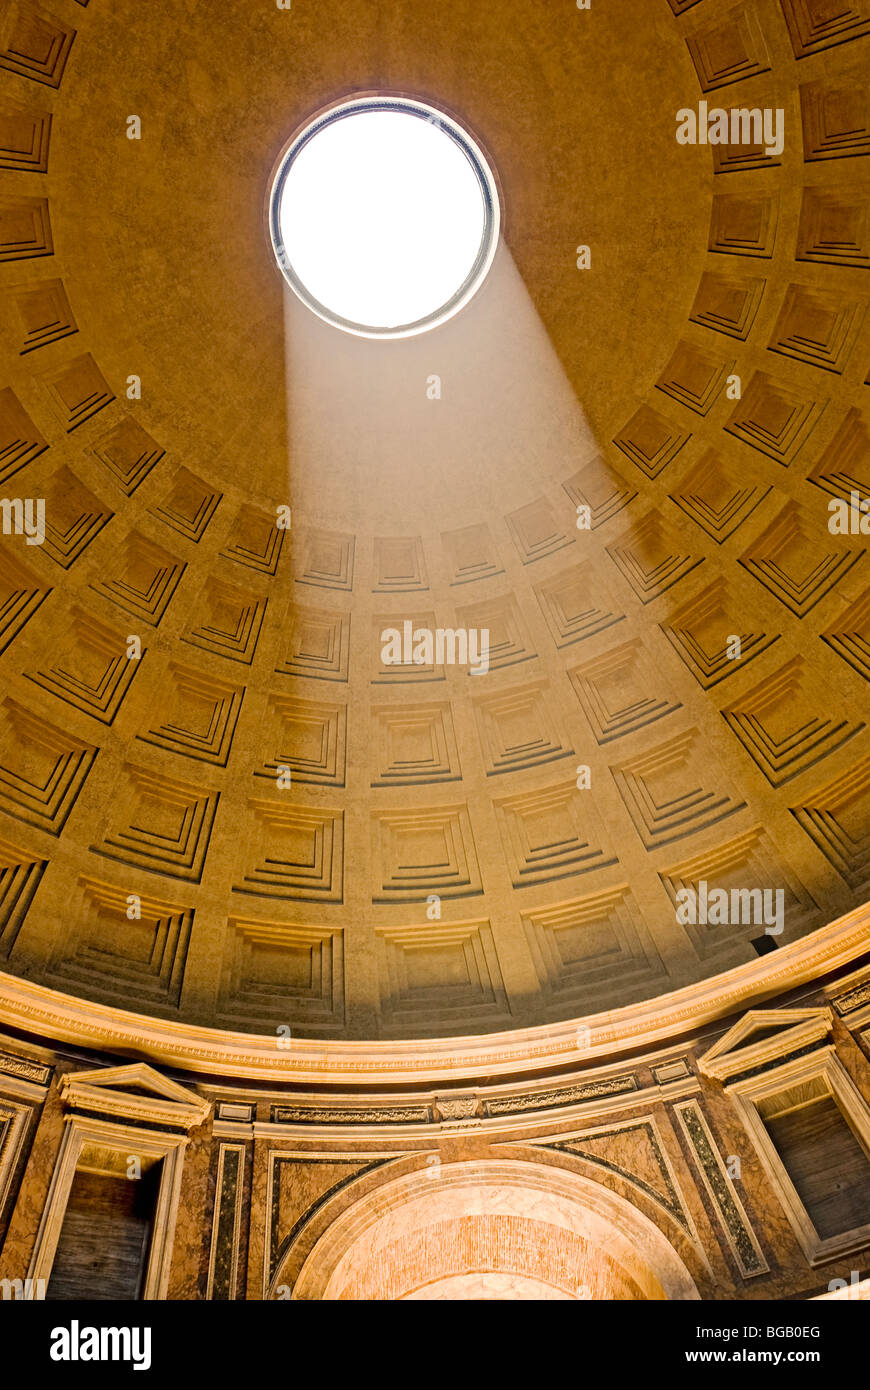 Rome, Italy. Interior of the Pantheon at the Piazza della Rotonda the Oculus and the coffered ceiling. Stock Photo